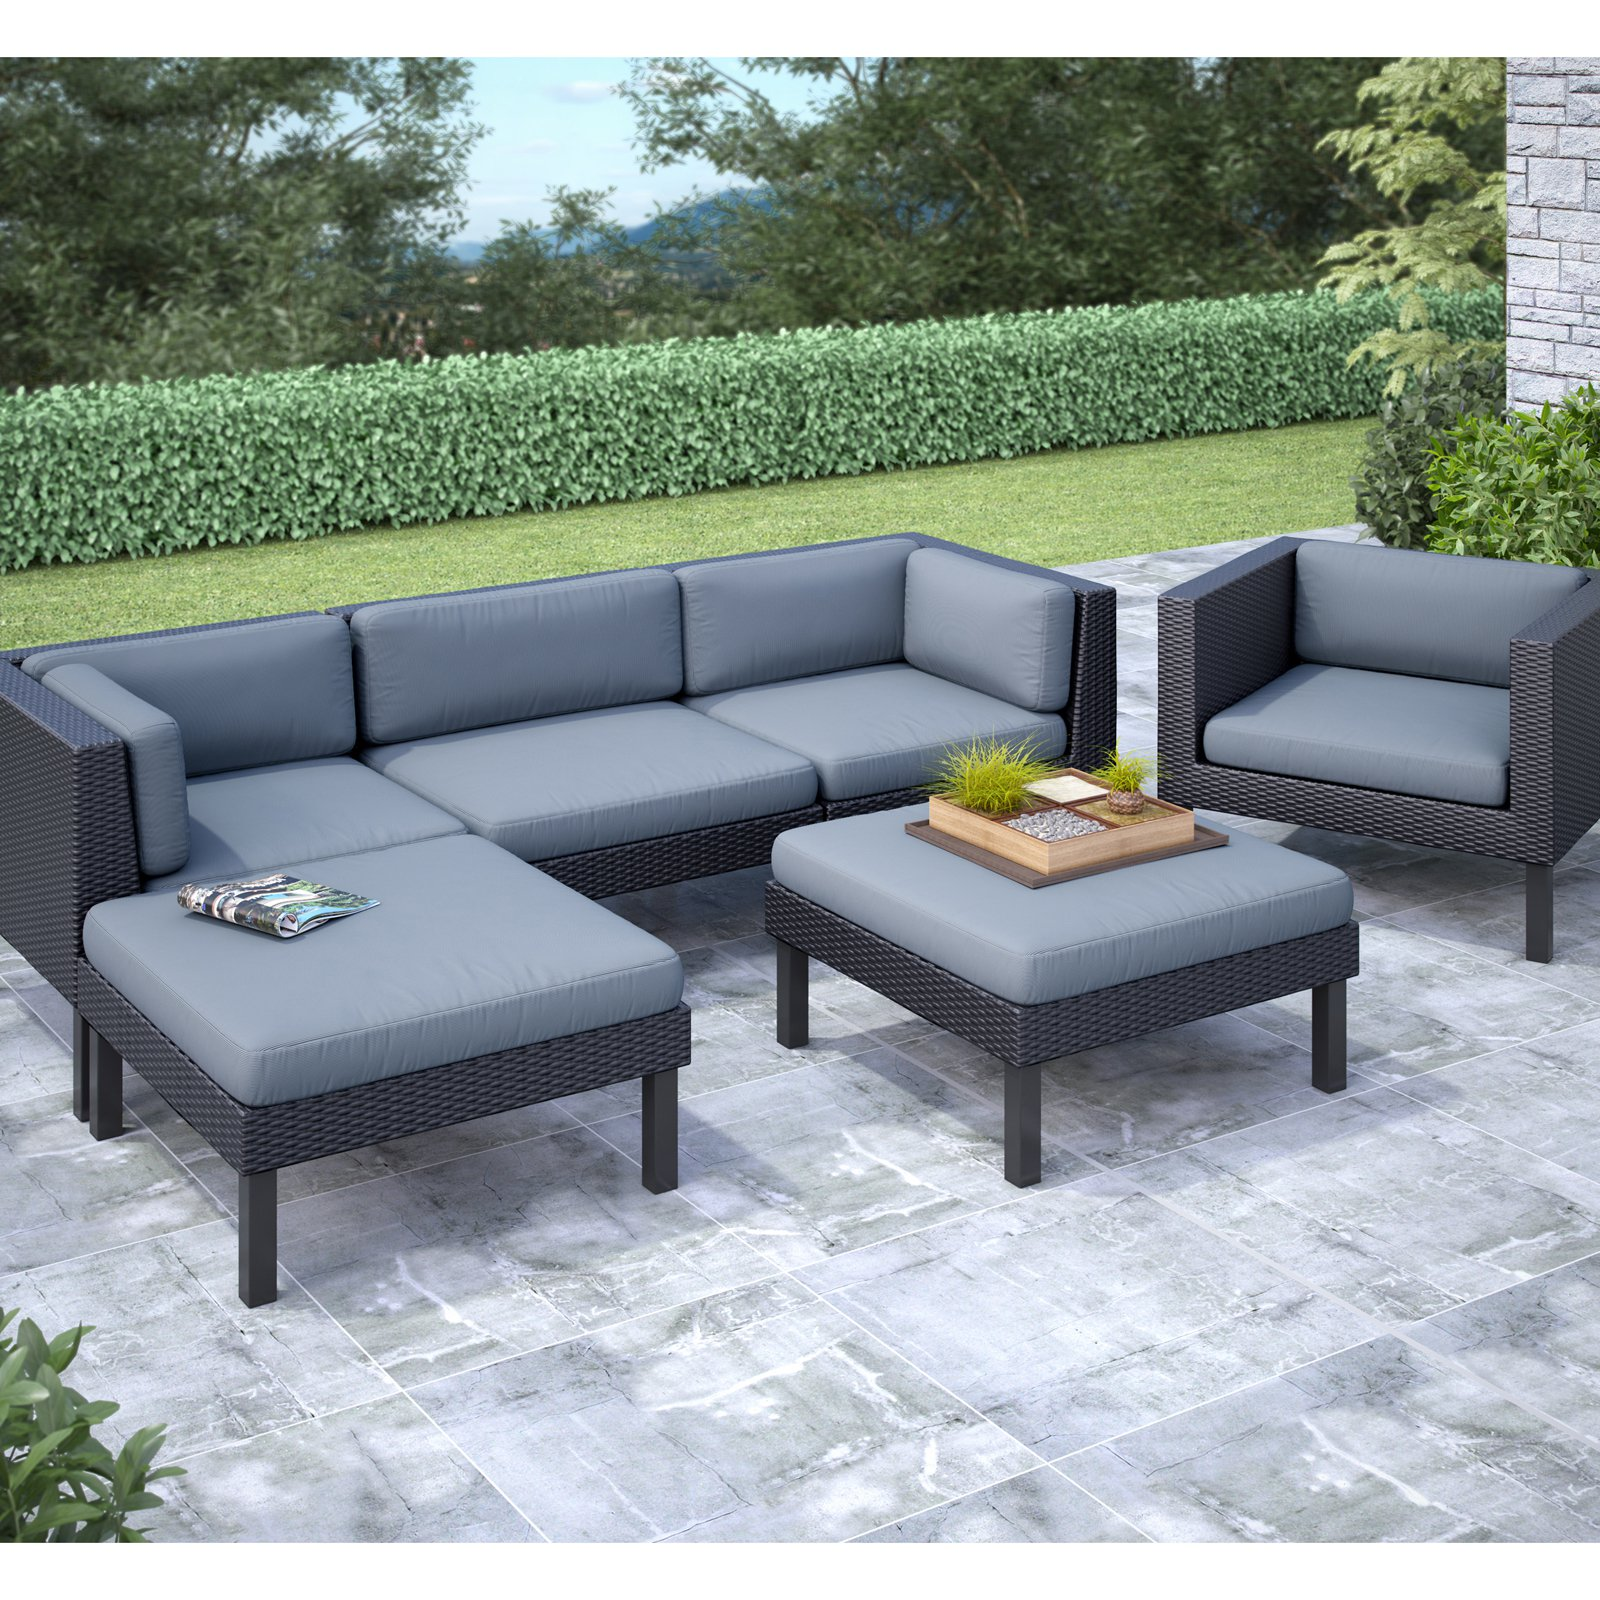 CorLiving Oakland 6pc Sofa with Chaise Lounge and Chair Patio Set, Dove Grey Cushions